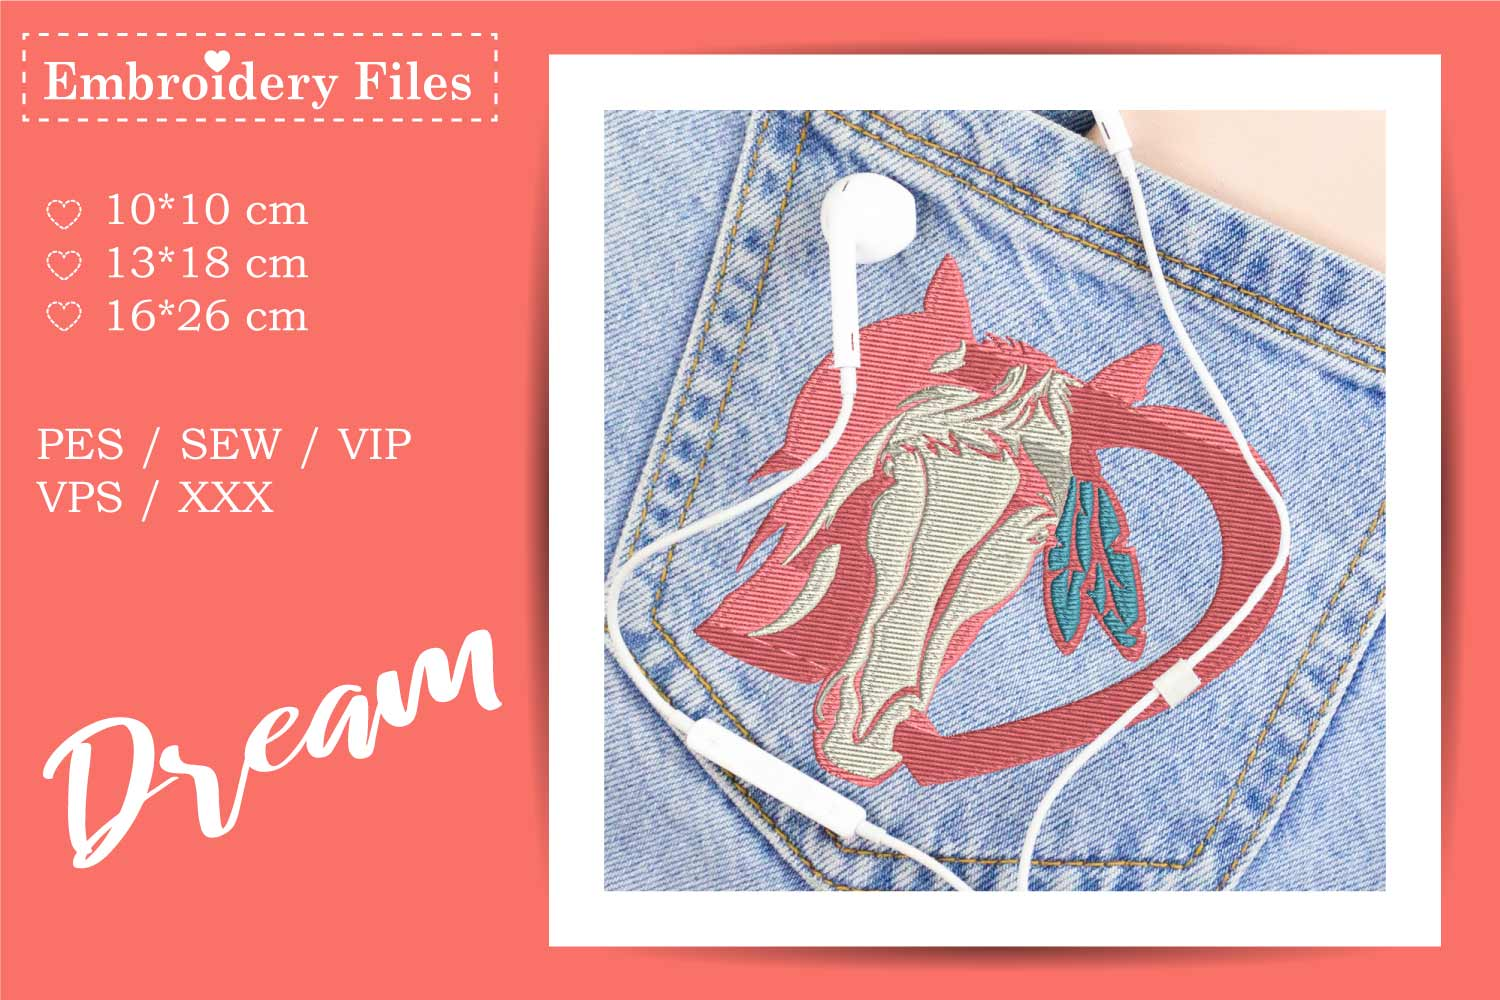 Horse in a Heart - Embroidery File for Beginners example image 2